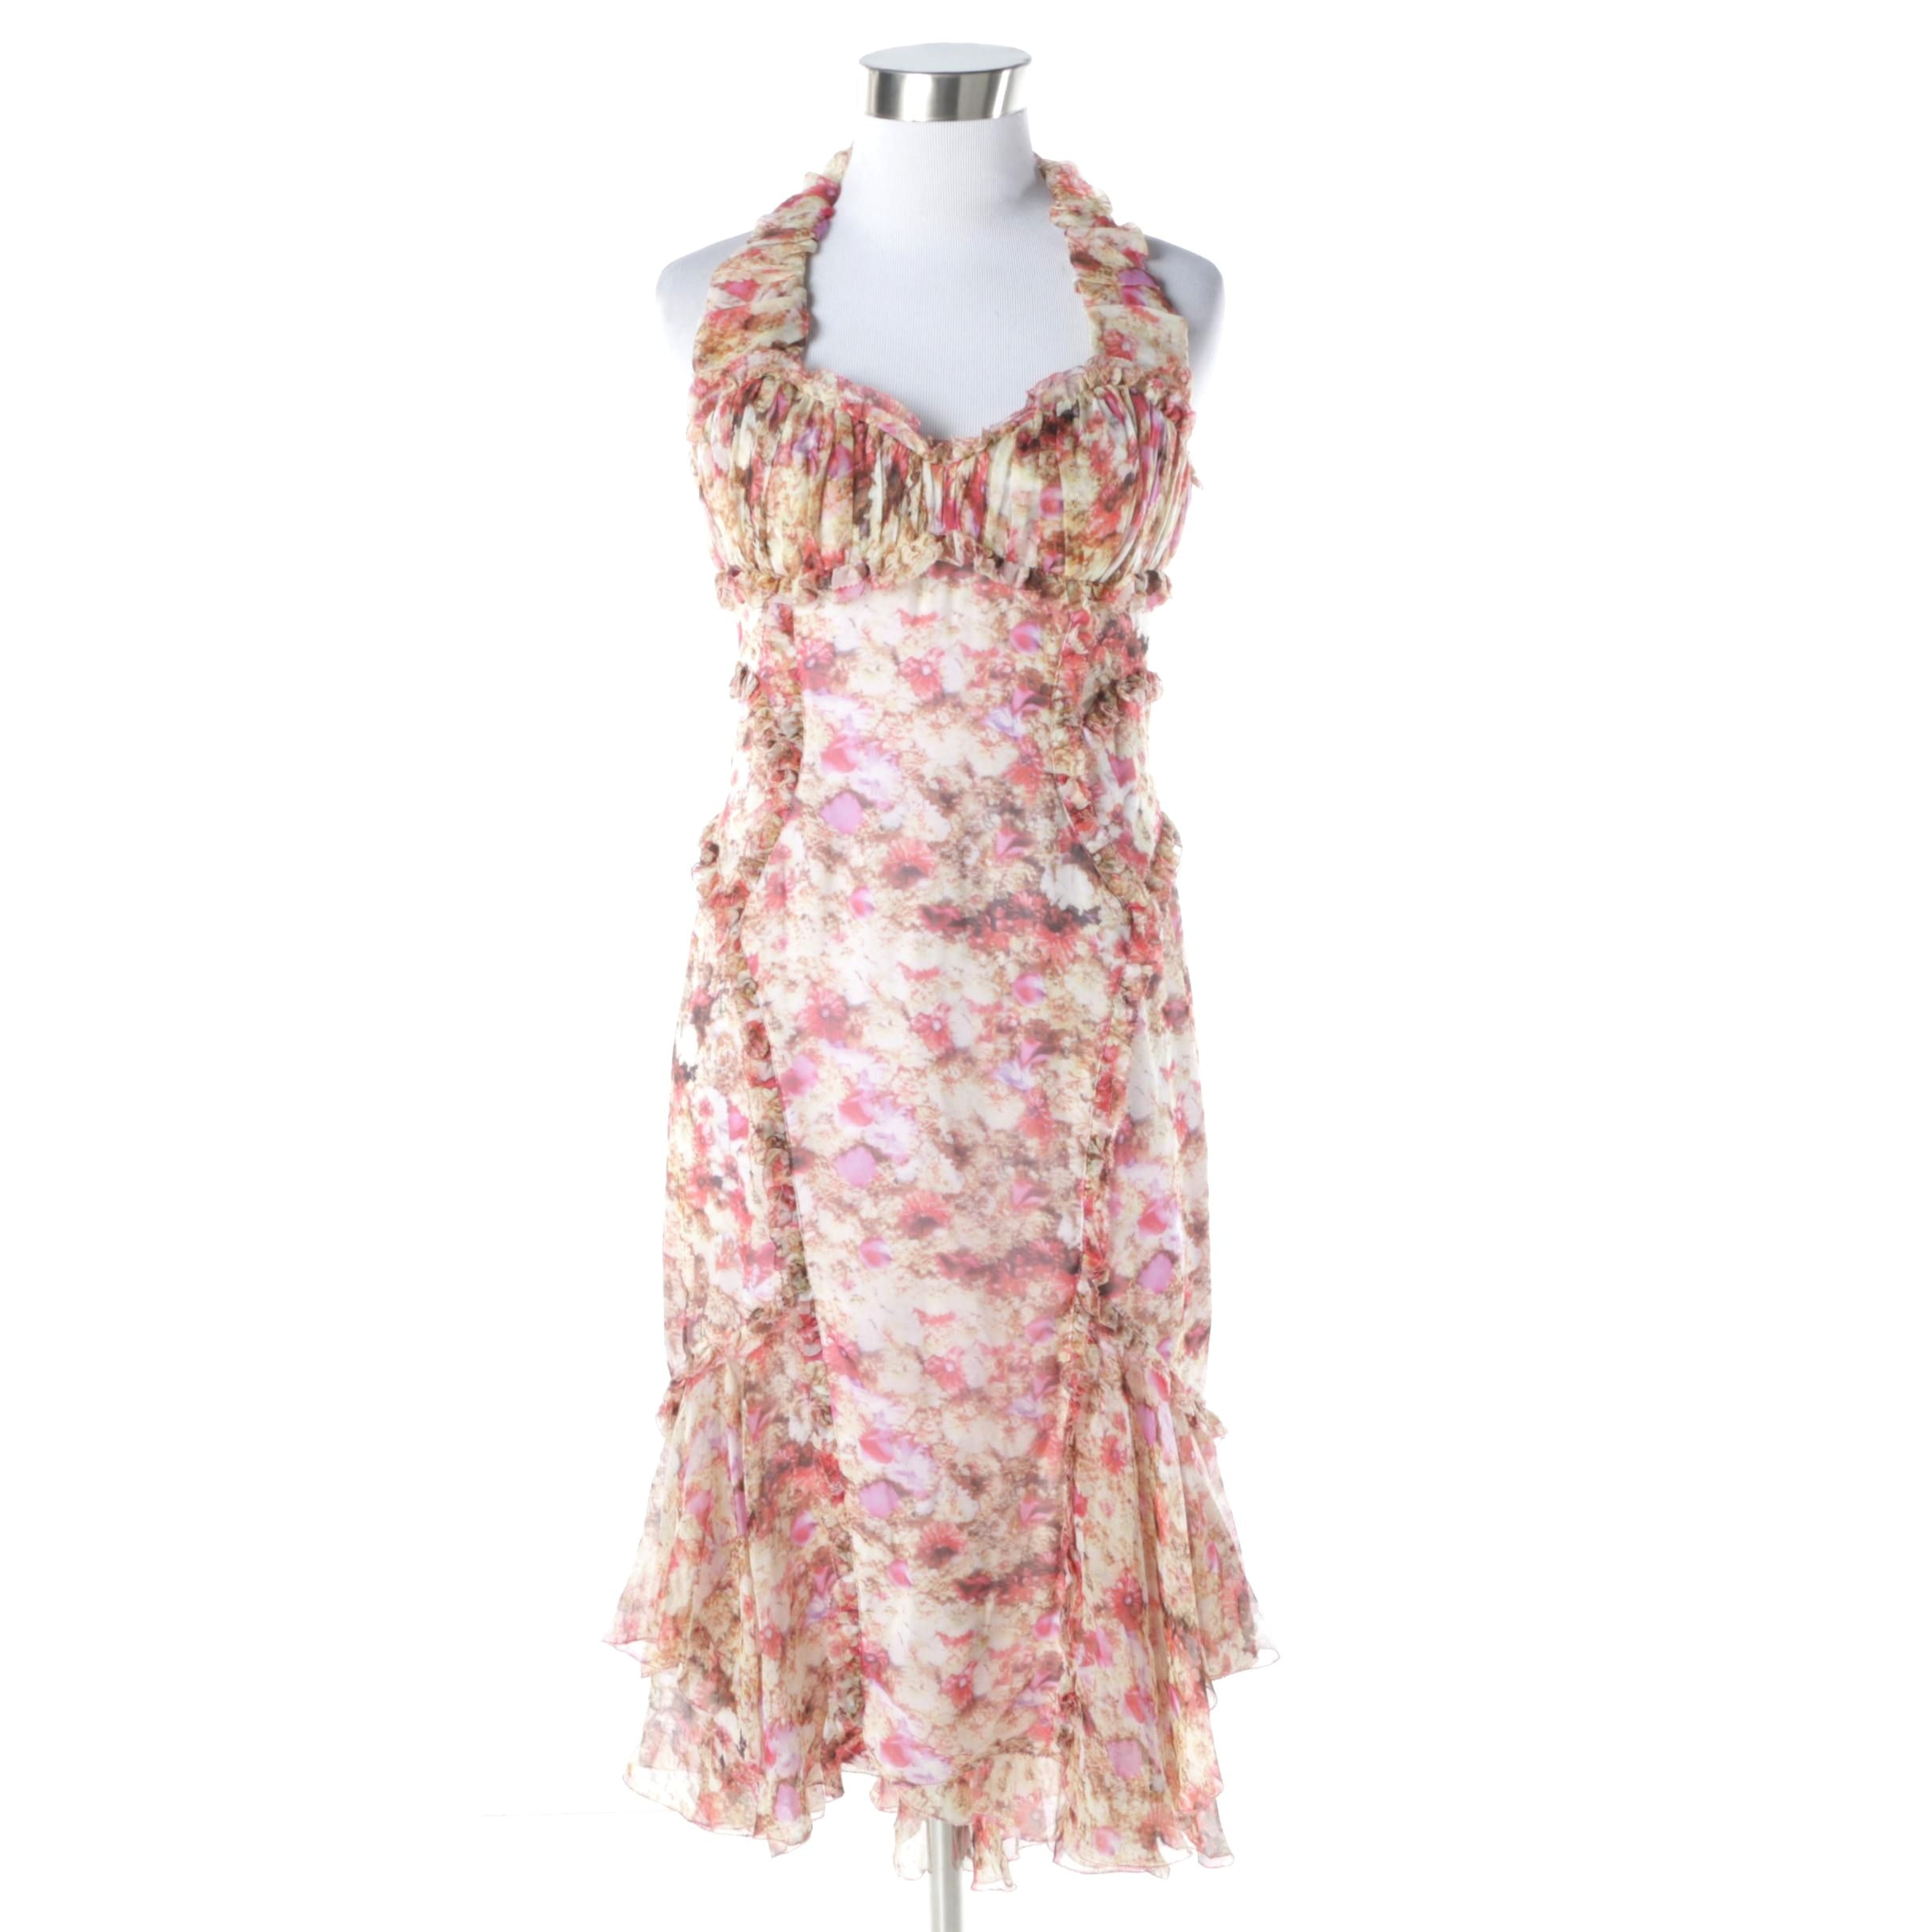 Zac Posen Garden Print Silk Chiffon Siren Dress